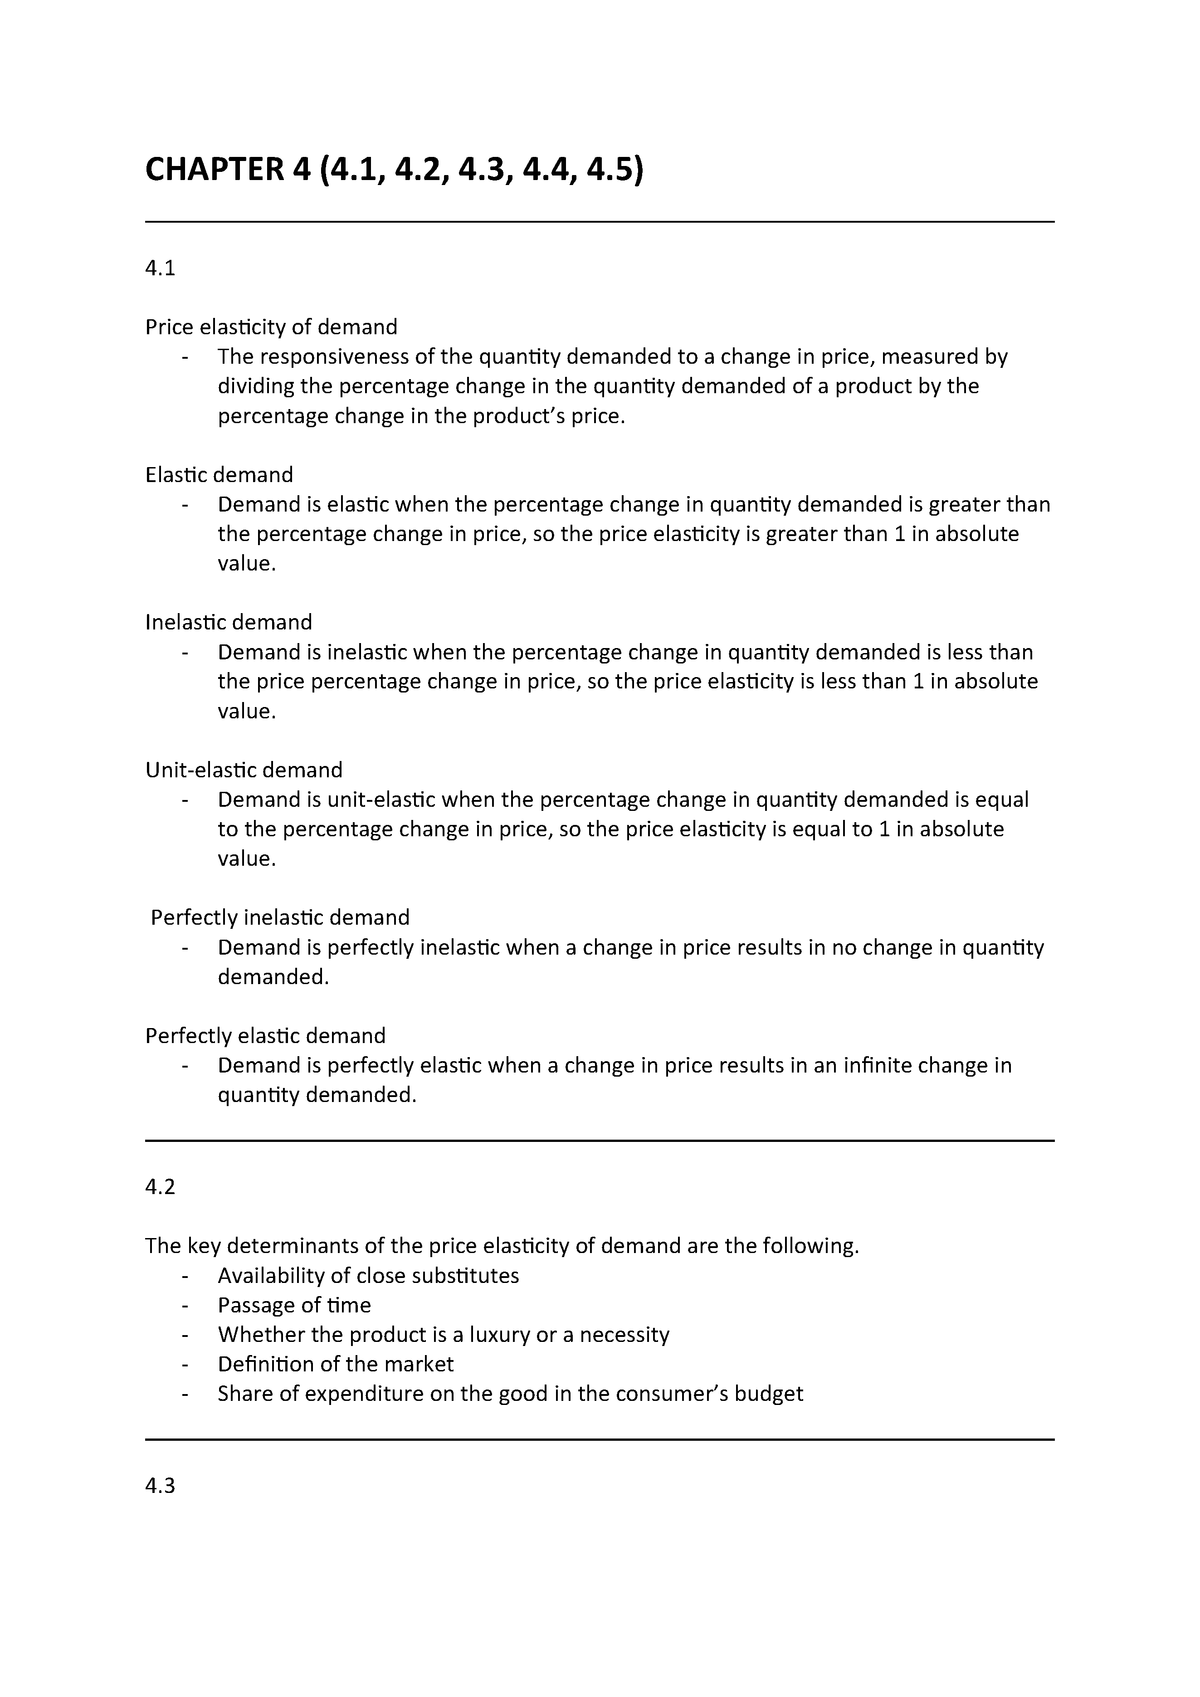 Chapter 4 Lecture Notes 3 Uow Studocu